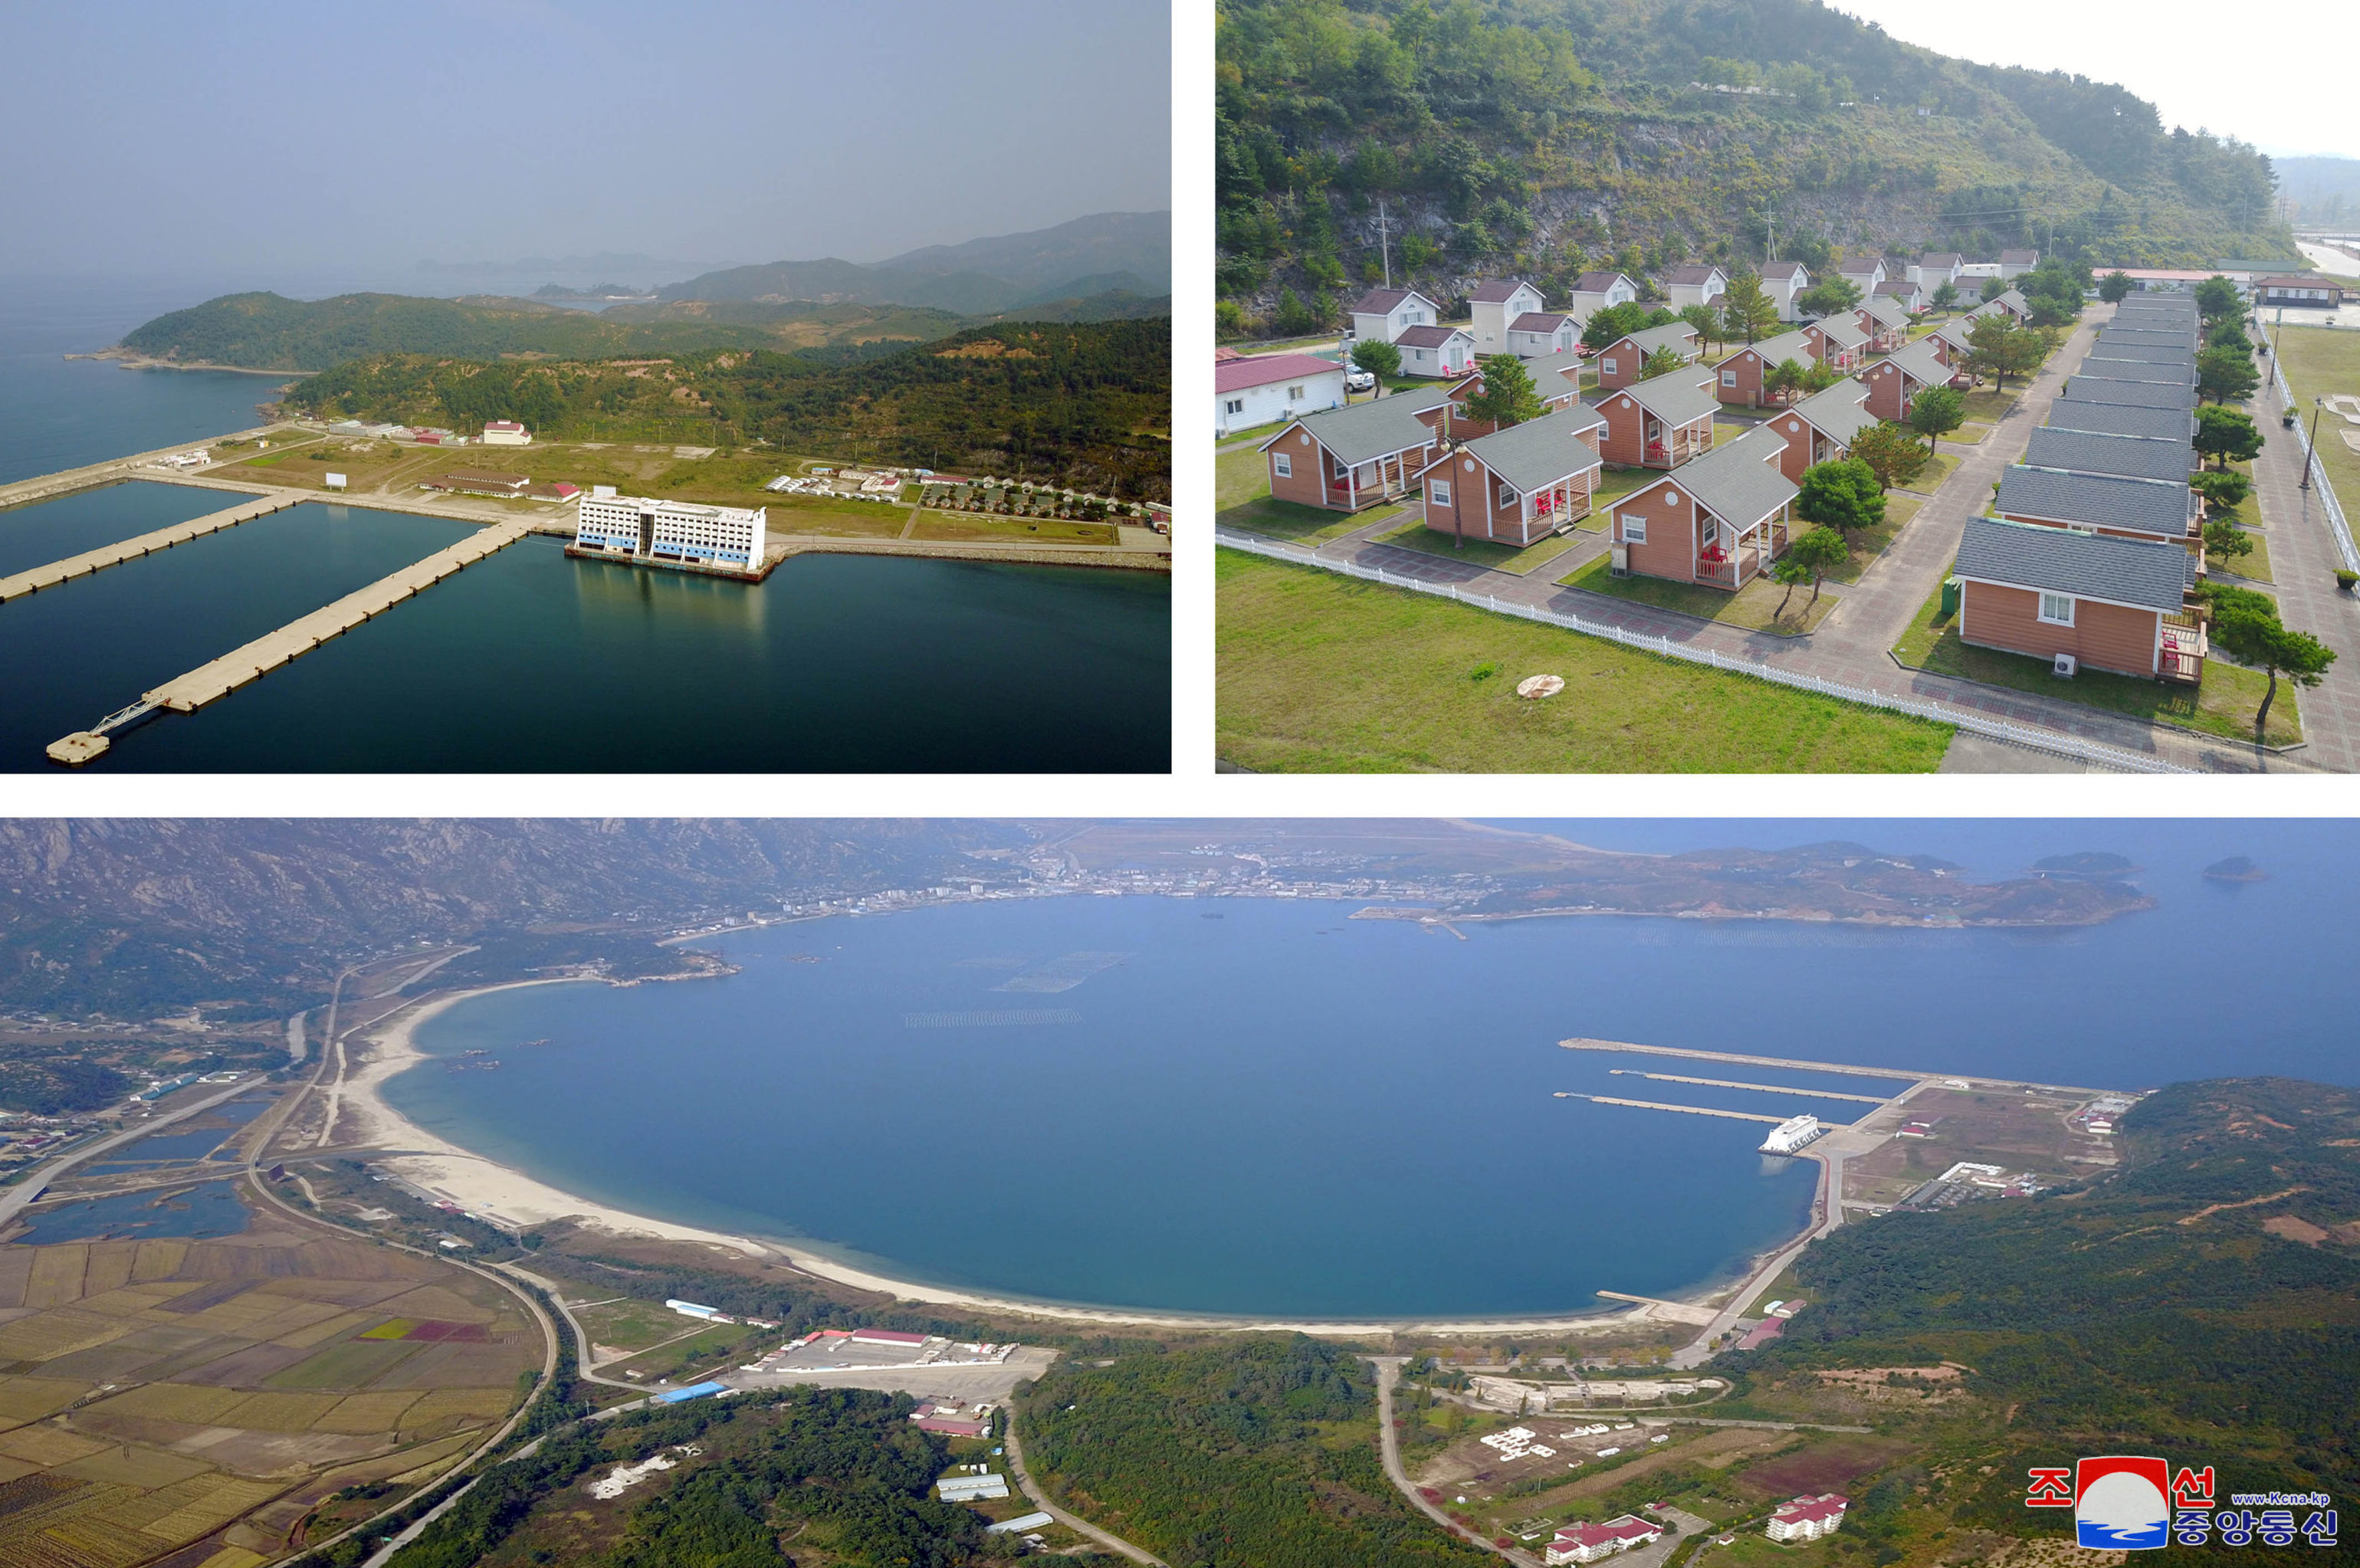 The Mount Kumgang tourist resort area is seen during North Korean leader Kim Jong Un's visit, North Korea, in this undated picture released by North Korea's Central News Agency (KCNA) on October 23, 2019